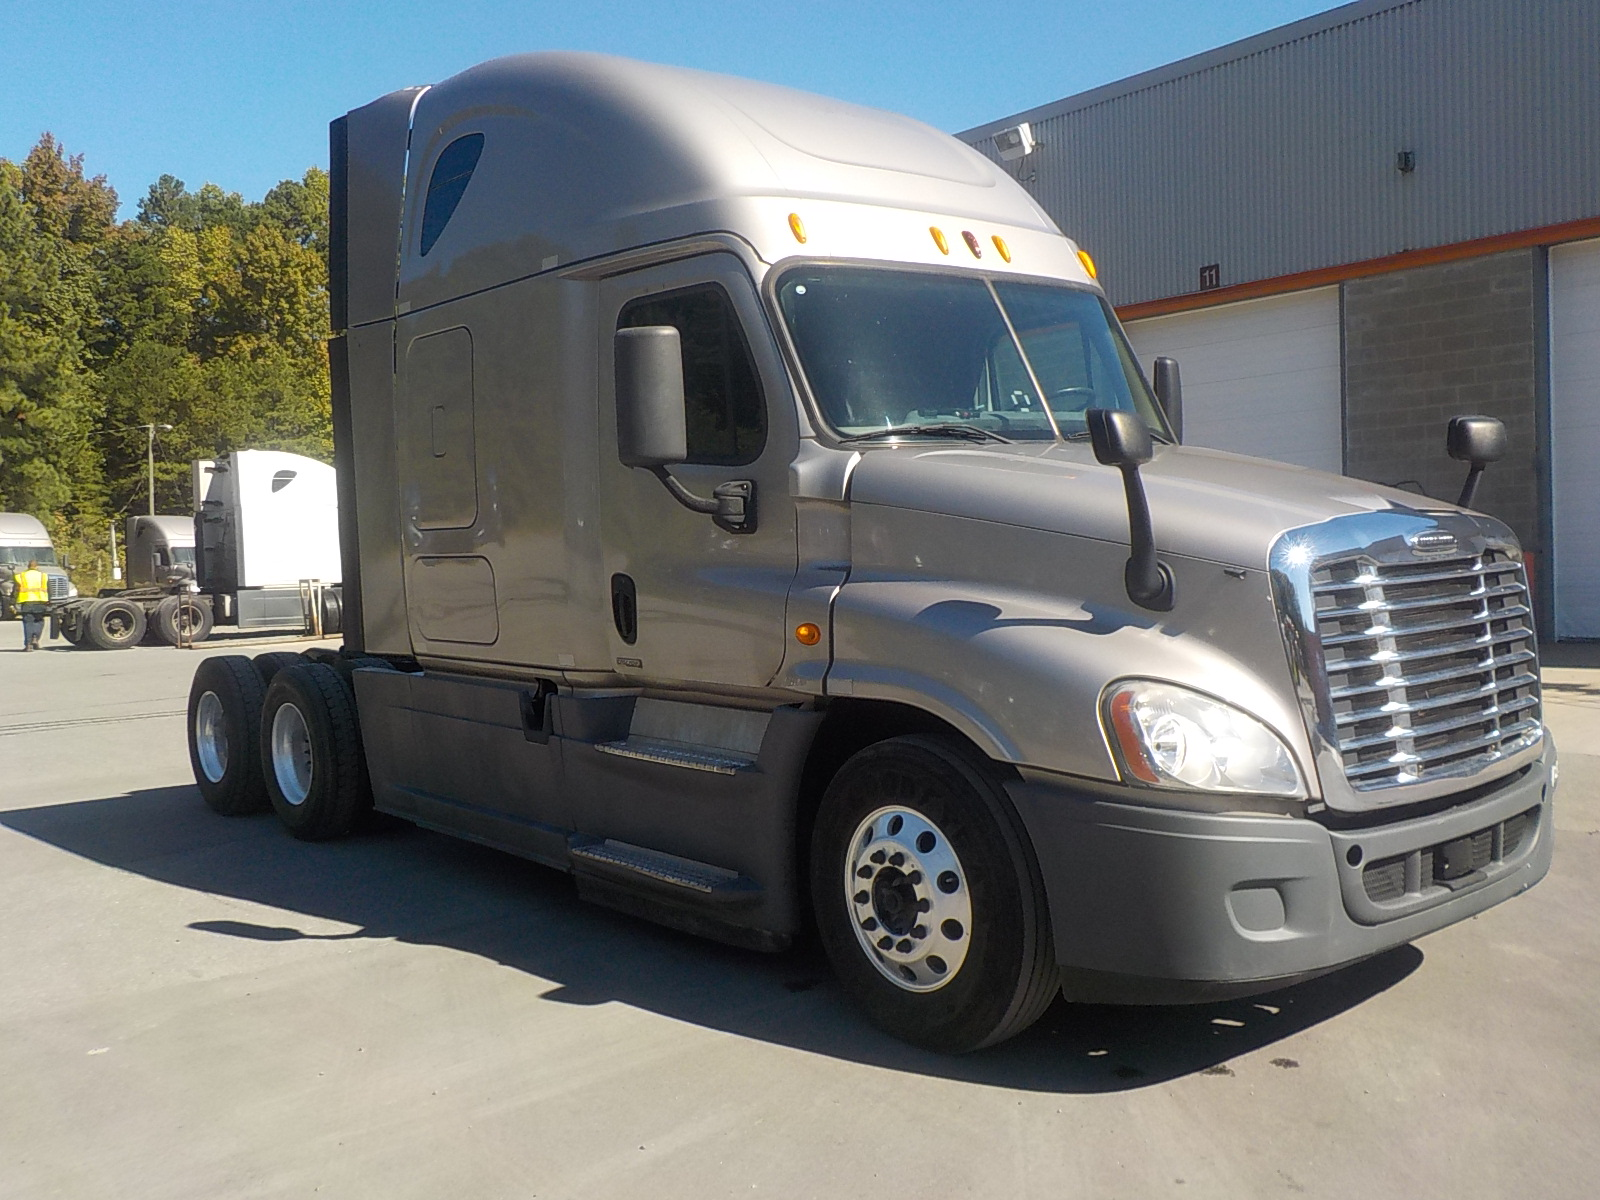 USED 2014 FREIGHTLINER CASCADIA SLEEPER TRUCK #135037